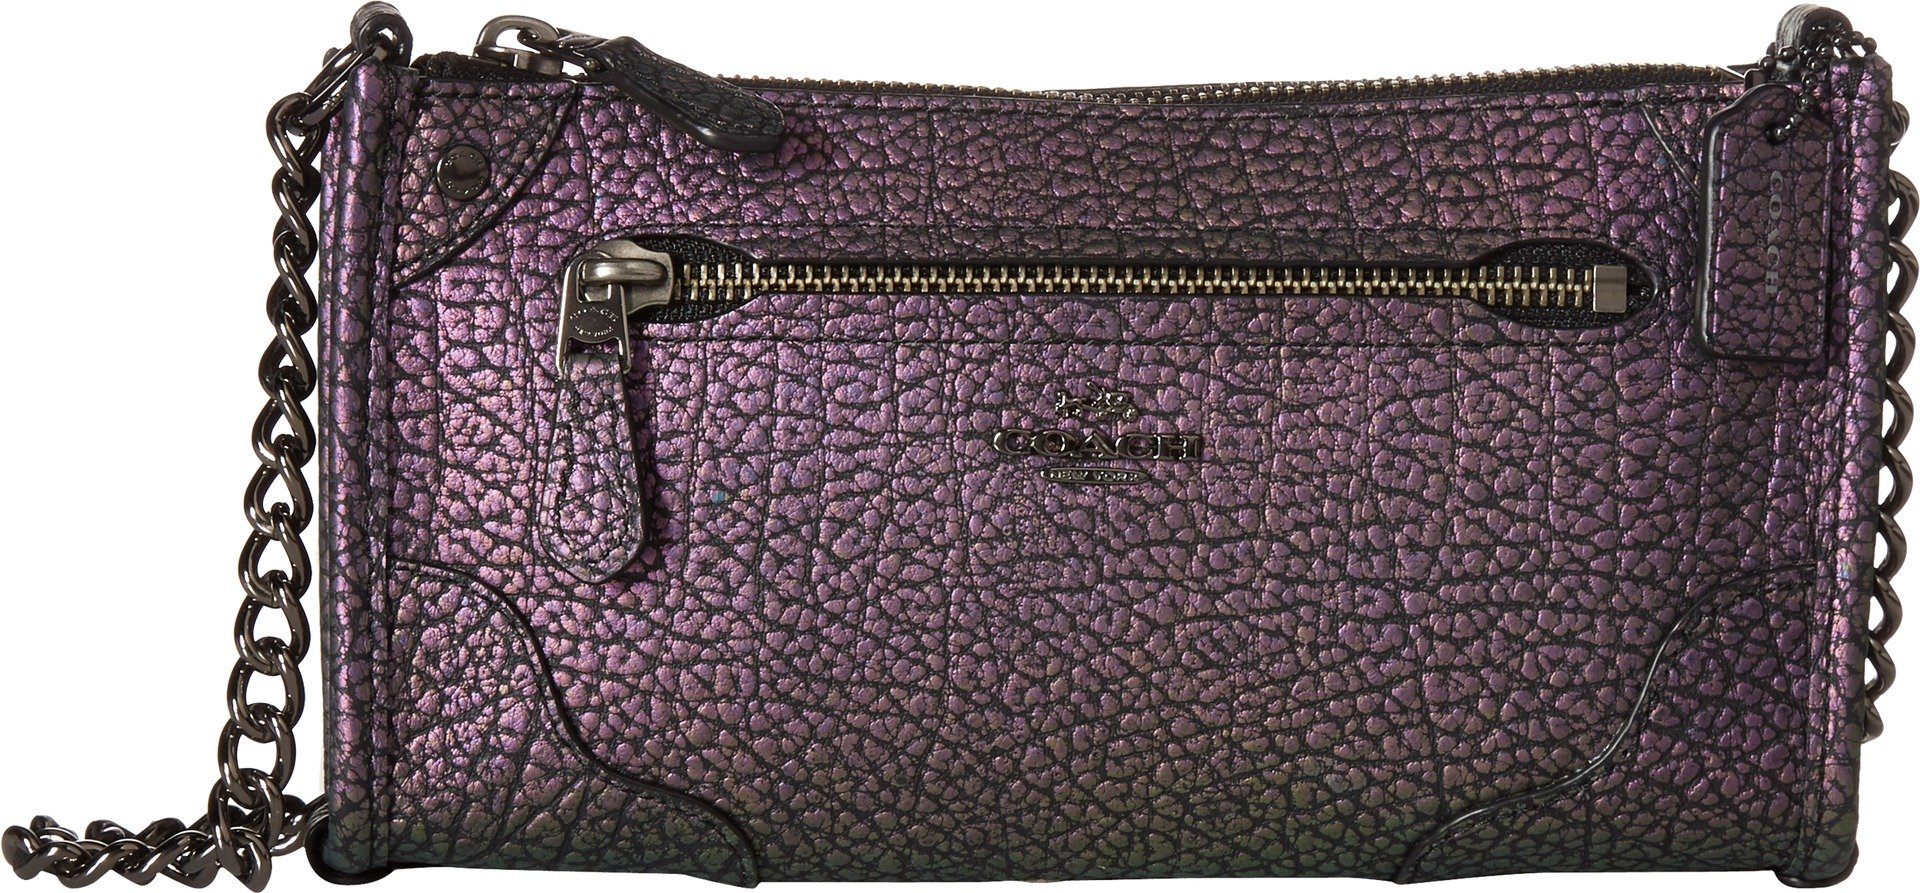 COACH Women's Grain Leather Mickie Crossbody Dk/Hologram One Size by Coach